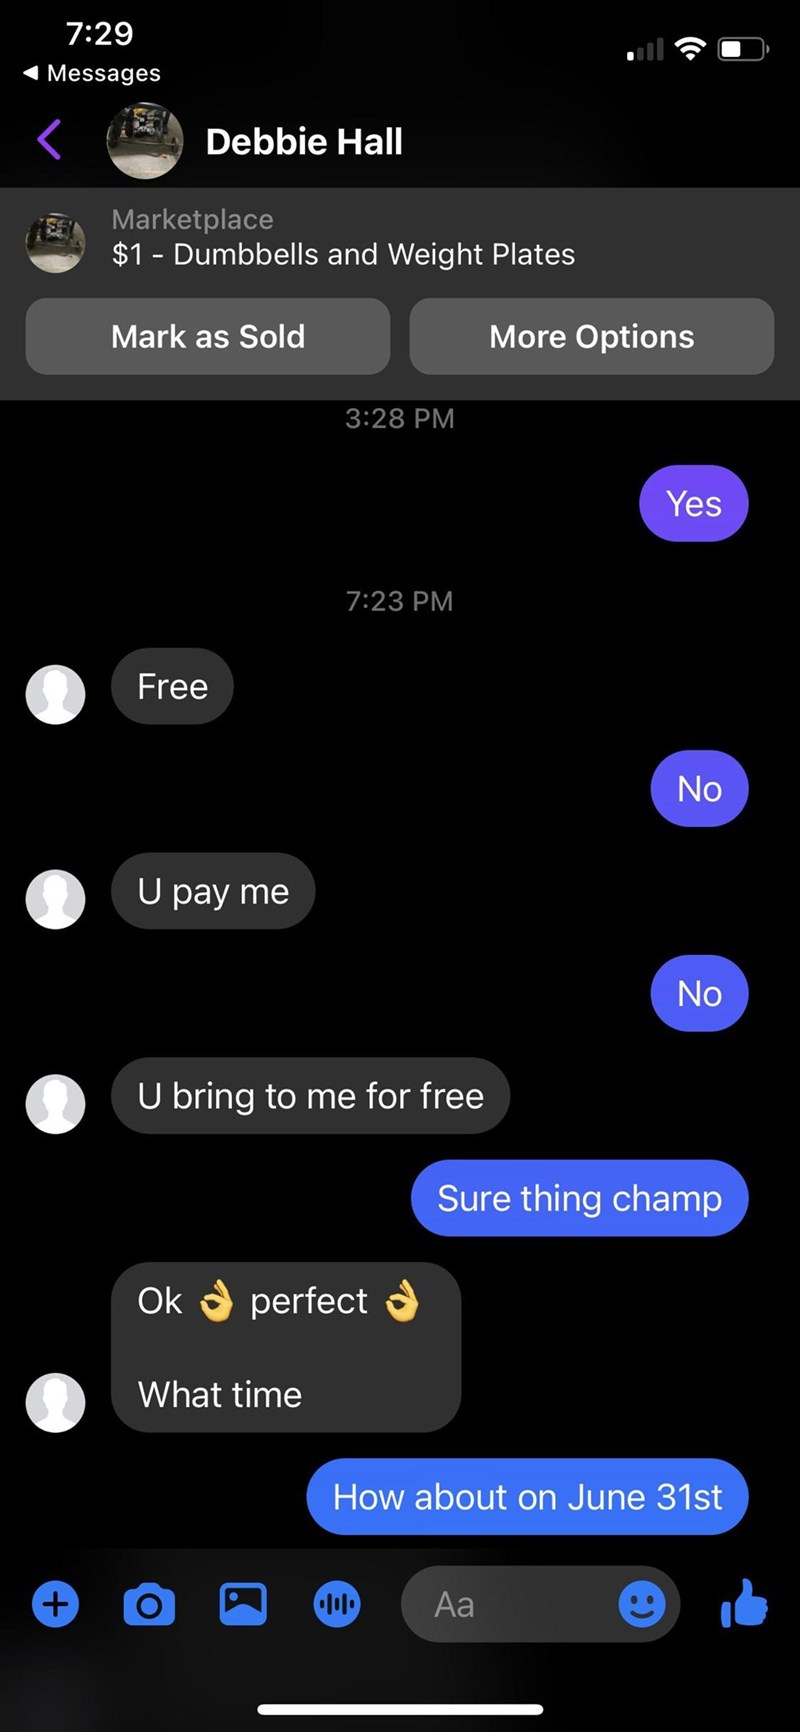 Light - 7:29 1 Messages Debbie Hall Marketplace $1 - Dumbbells and Weight Plates Mark as Sold More Options 3:28 PM Yes 7:23 PM Free No U pay me No U bring to me for free Sure thing champ Ok a perfect a What time How about on June 31st +) Aa